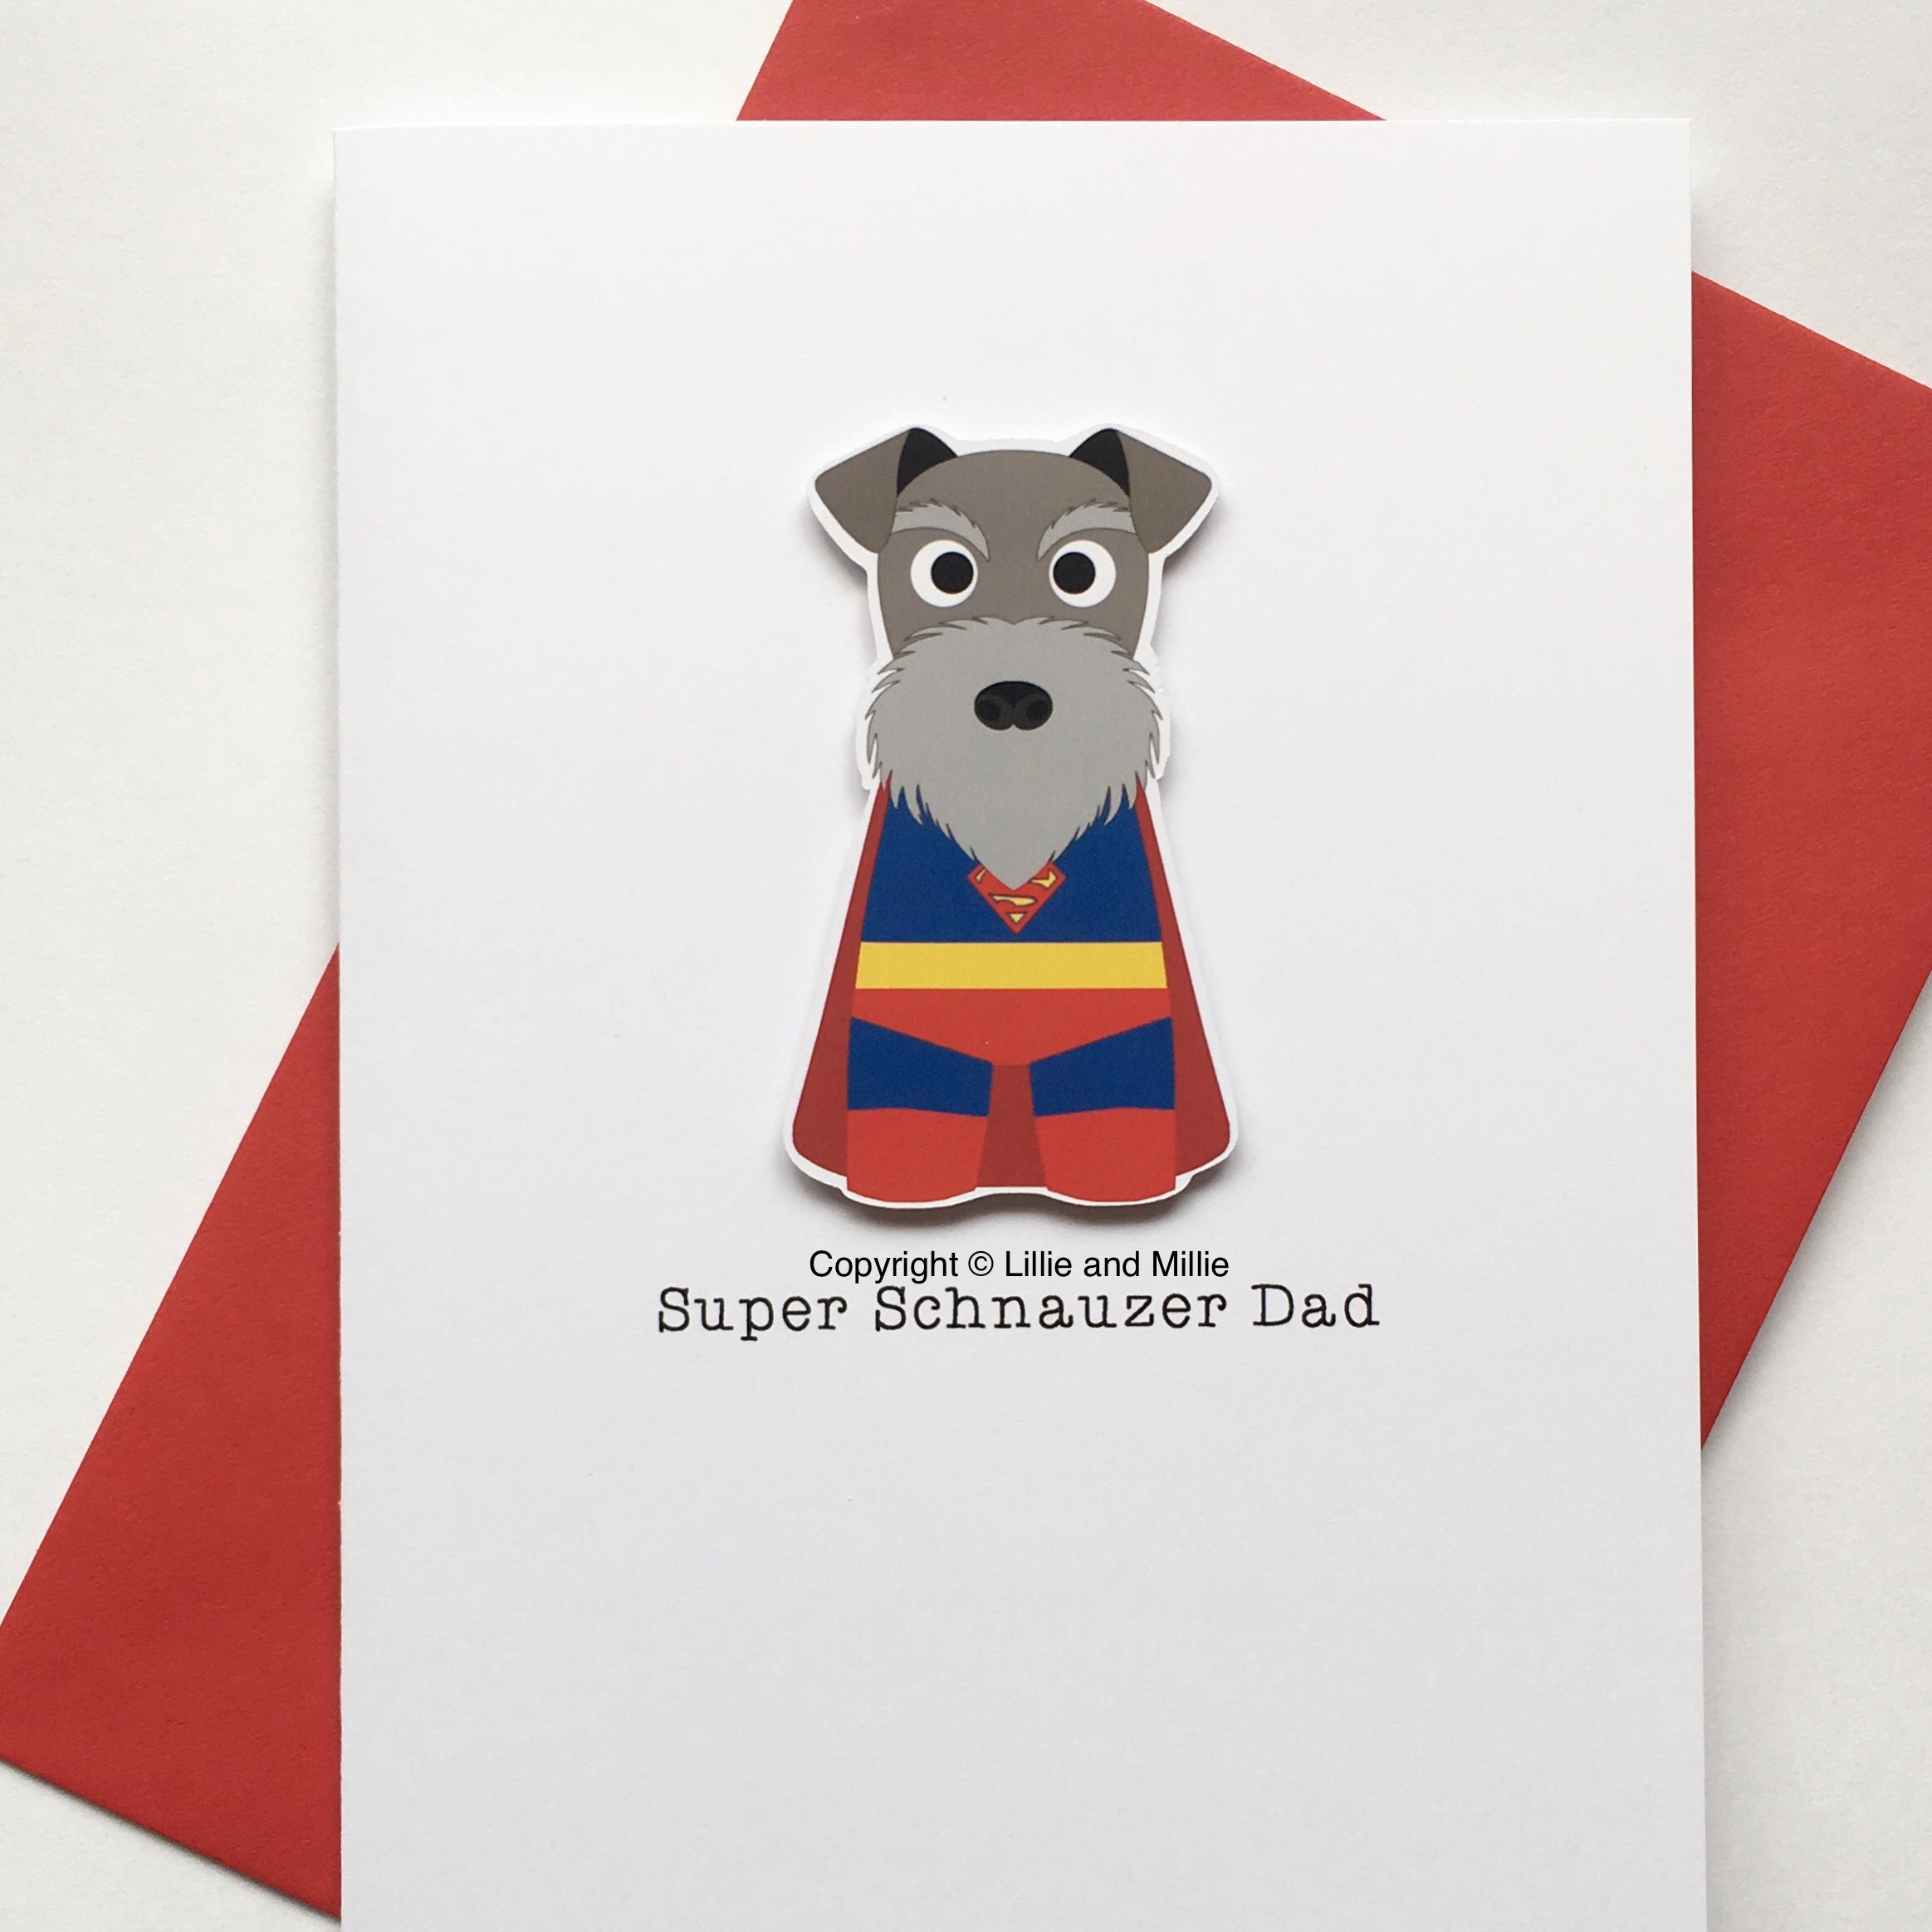 Cute and Cuddly Large Super Schnauzer Dad SALE Card